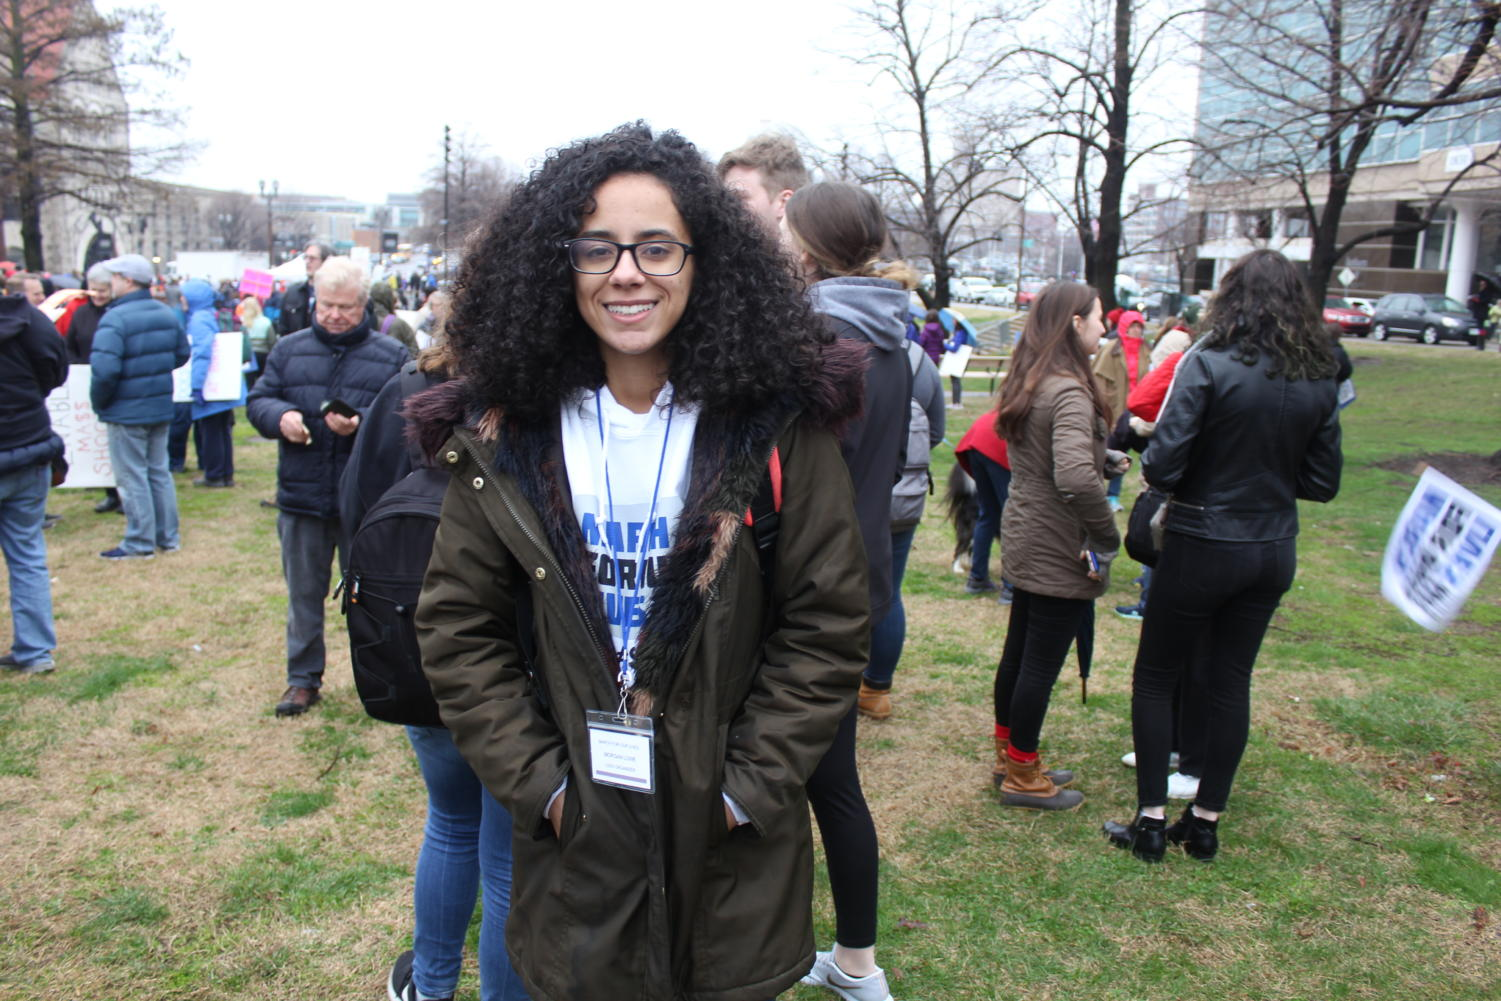 Morgan+Lowe%2C+lead+protest+organizer%2C+is+one+of+four+college+age+students+who+organized+the+protest.+%E2%80%9CIt+needs+to+change%2C%E2%80%9D+Lowe+said.+%E2%80%9CColumbine+should+have+been+enough.+Sandy+Hook+should+have+been+enough.+The+approximately+13%2C000+lives+that+are+lost+each+year+should+have+been+enough.It%E2%80%99s+time+for+change%2C+it+has+to+change+and+our+politicians+need+to+listen+to+us.%E2%80%9D